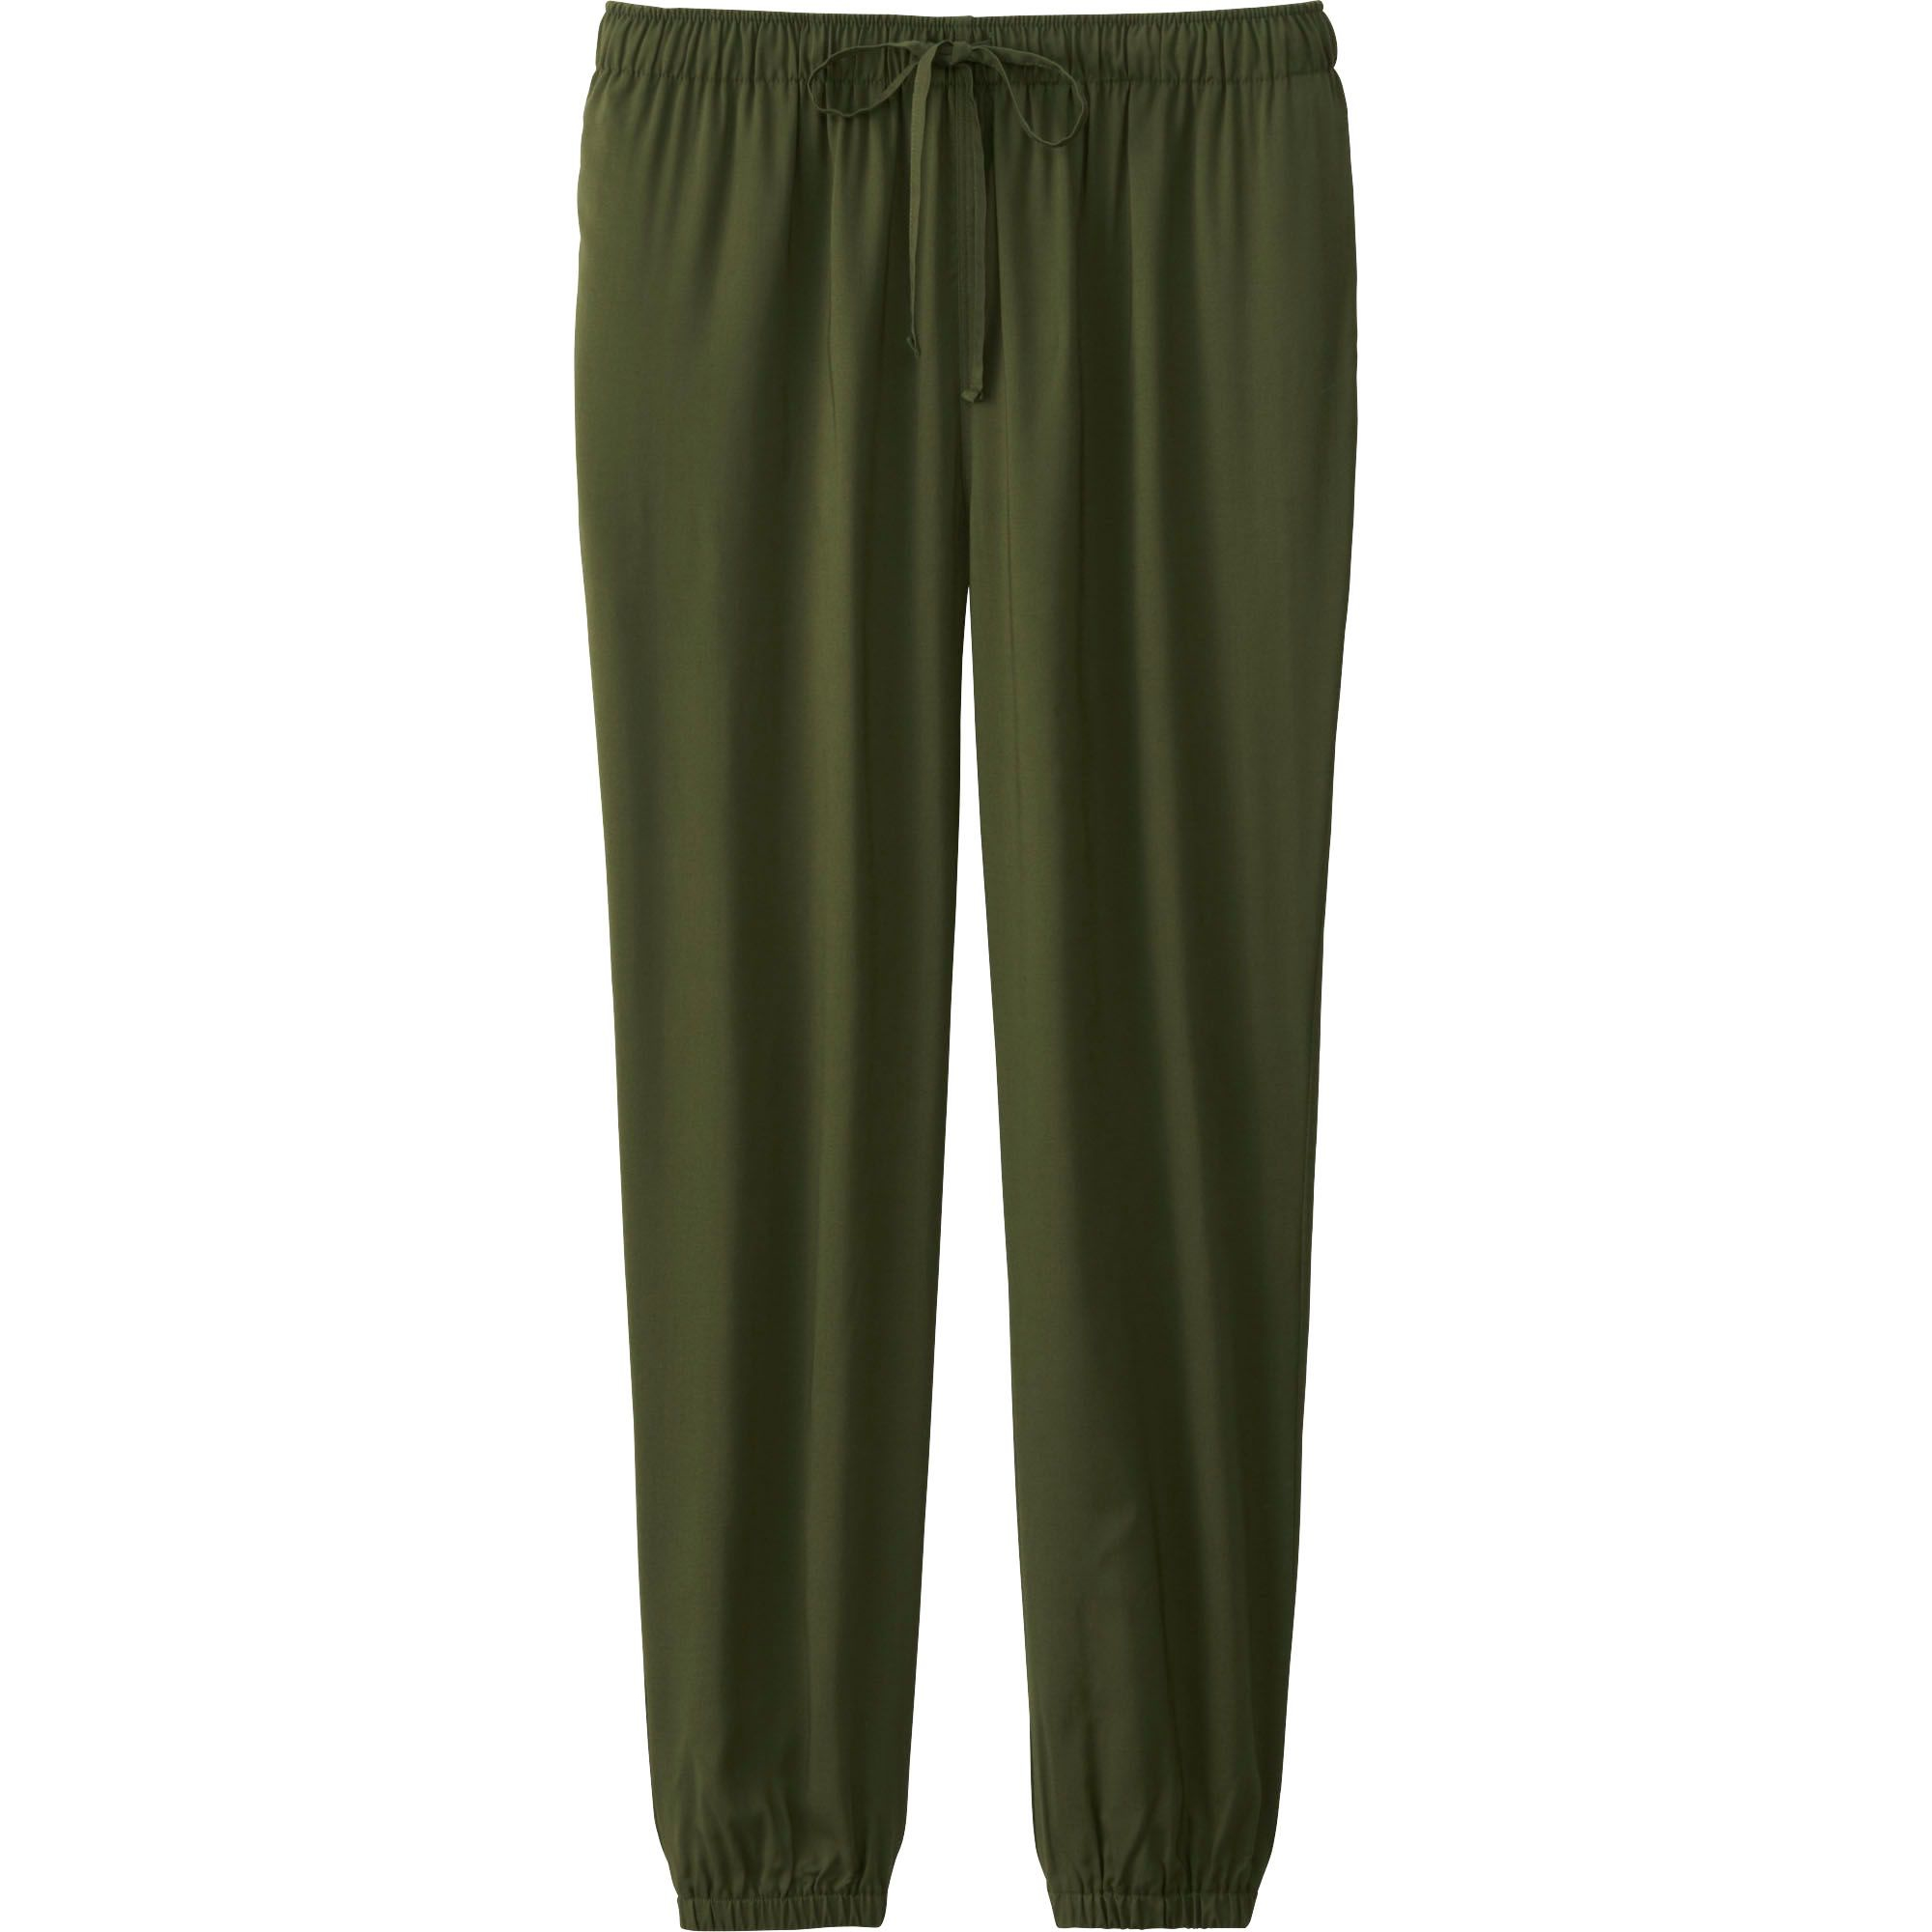 Awesome Cherokee Womens Sz XSmall Olive Green Casual Cargo Pants 4G26 EBay